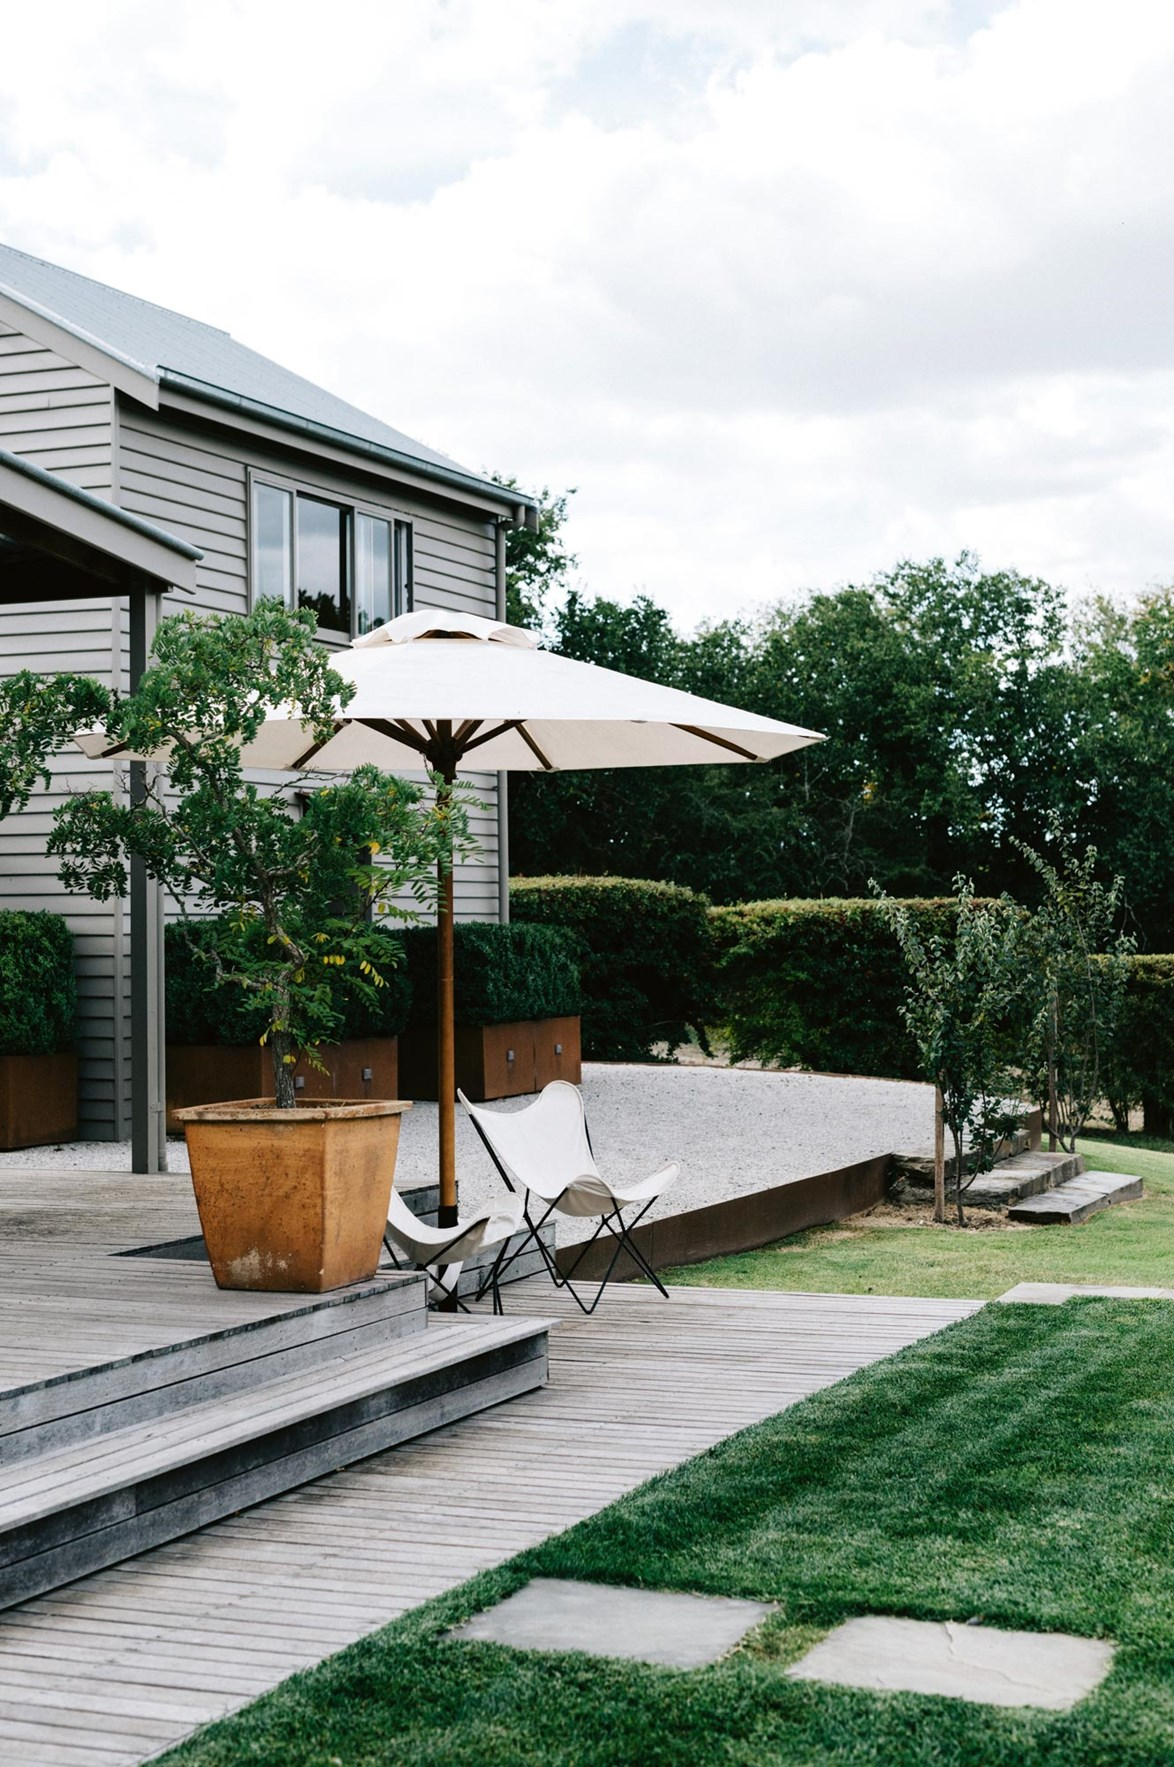 "<p>**River House, Kyneton**<P> <p>On the site of a formerly dilapidated farm is now a [sprawling country estate](https://www.homestolove.com.au/light-filled-cottage-on-the-banks-of-coliban-river-victoria-13874|target=""_blank"") complete with an infinity pool, views of the Coliban River and a private tennis court. From the open-plan living and dining area you can sit back and enjoy views of the garden and river beyond. This holiday home is sure to be a hit with the kids.<p> <p>**For information and bookings, visit [River House on the Flophouse website](https://www.flophouse.com.au/river-house/